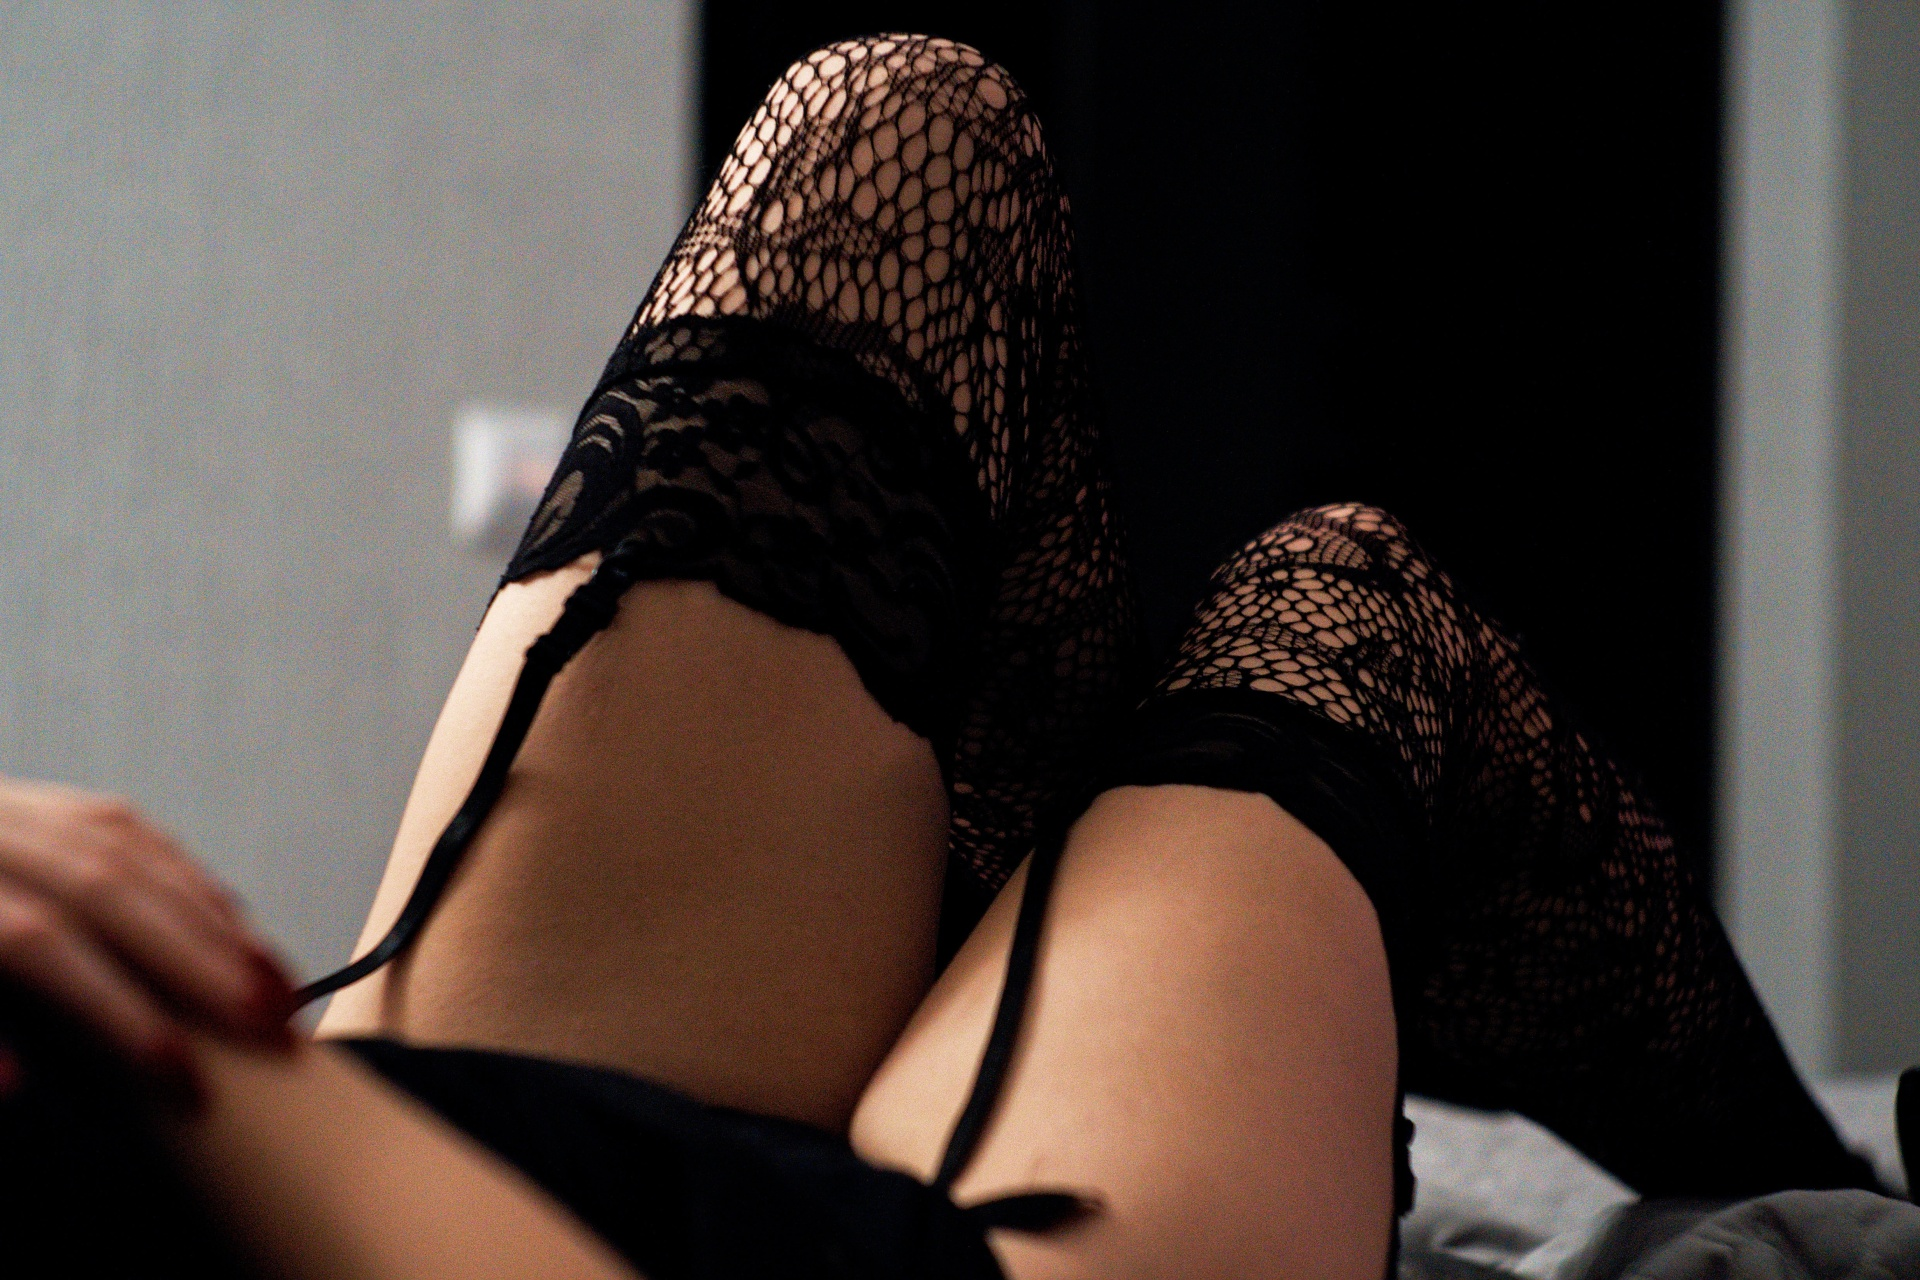 30 Sex-Starved People Reveal The Kinkiest Thing They Want To Do (But Can't)